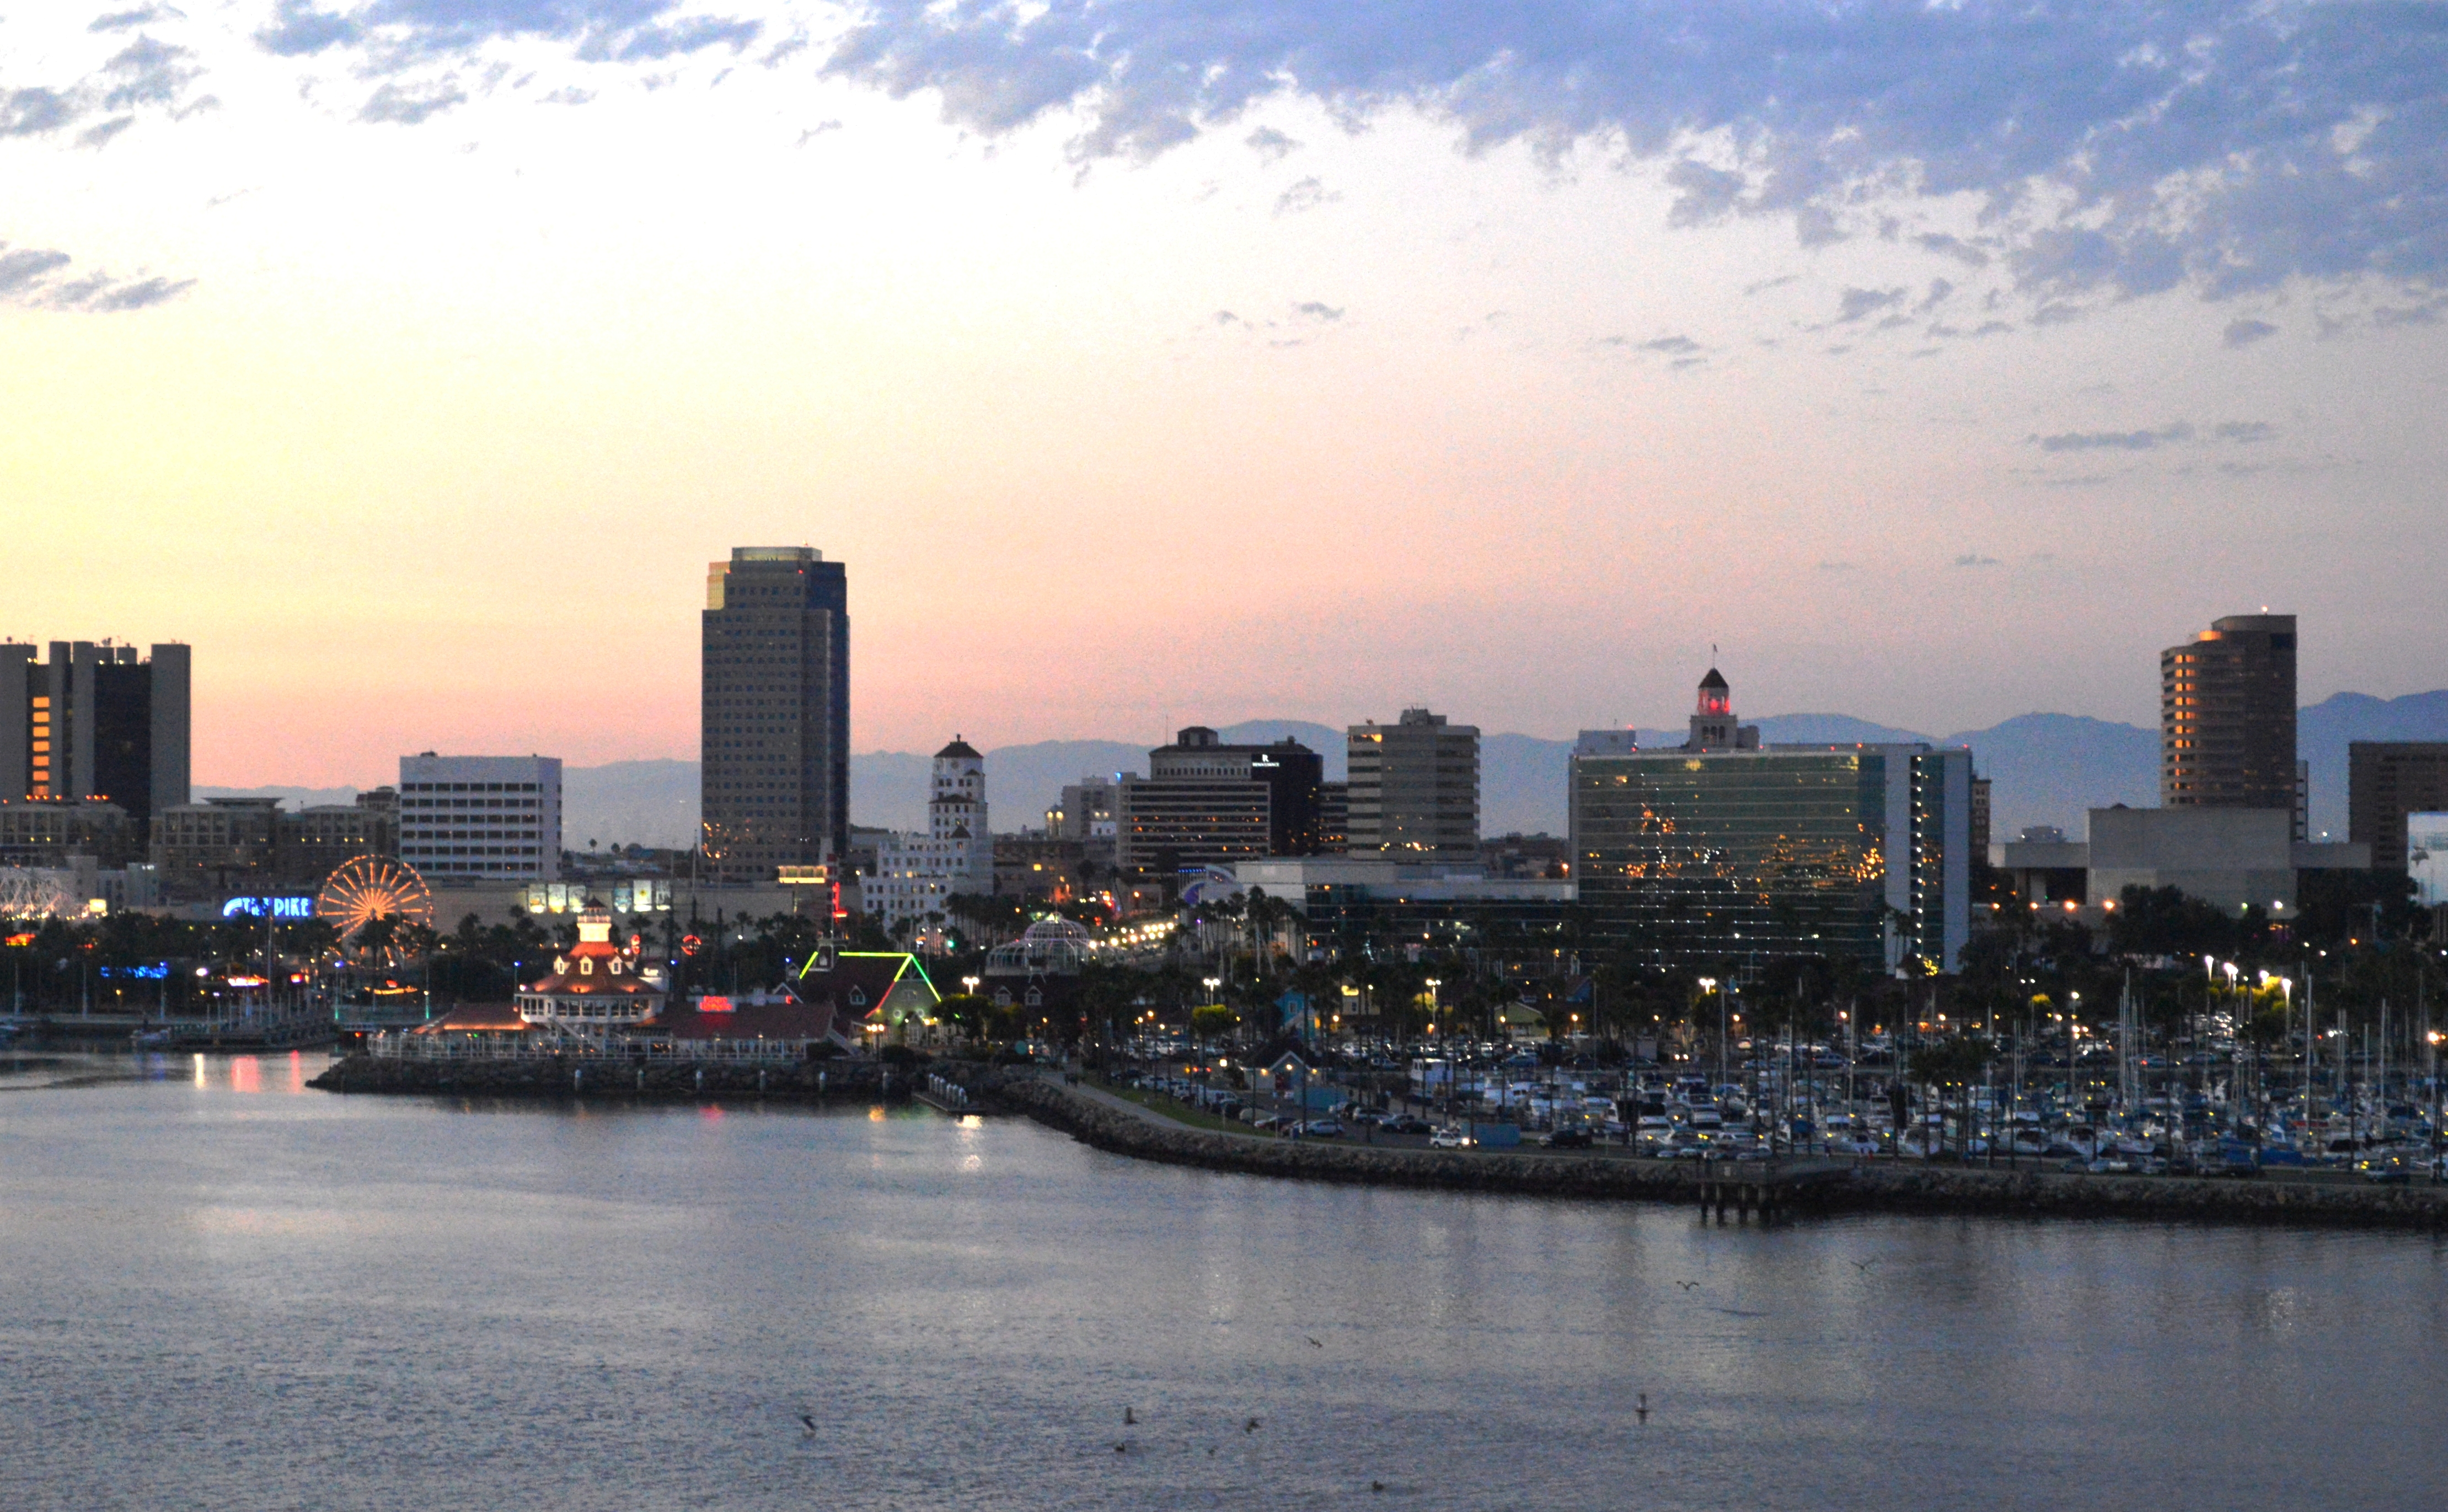 File:Downtown, Long Beach From Queen Mary (Dusk).JPG